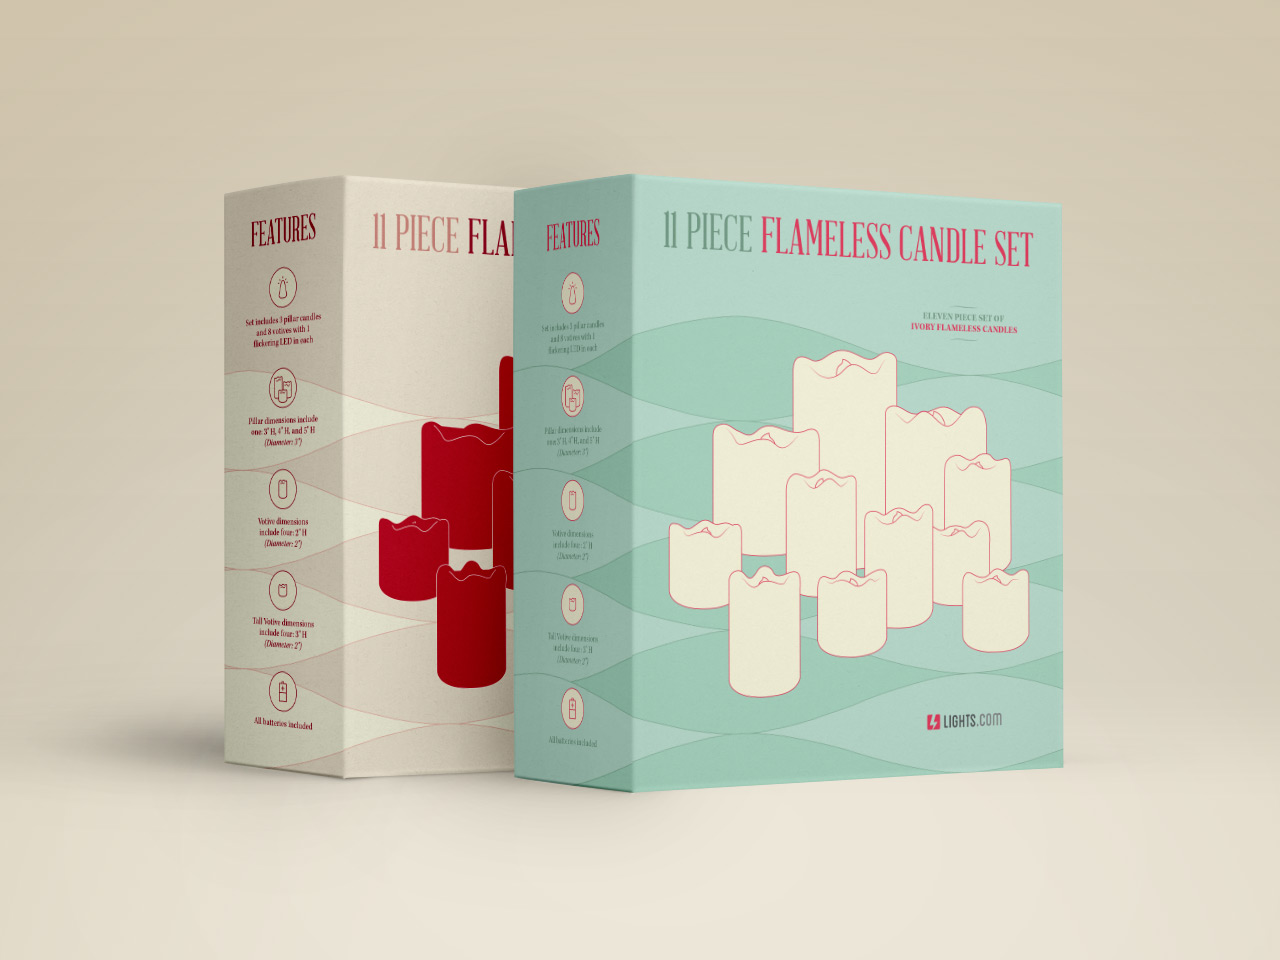 Lights.com 11 Piece Flameless Candle Set Packaging